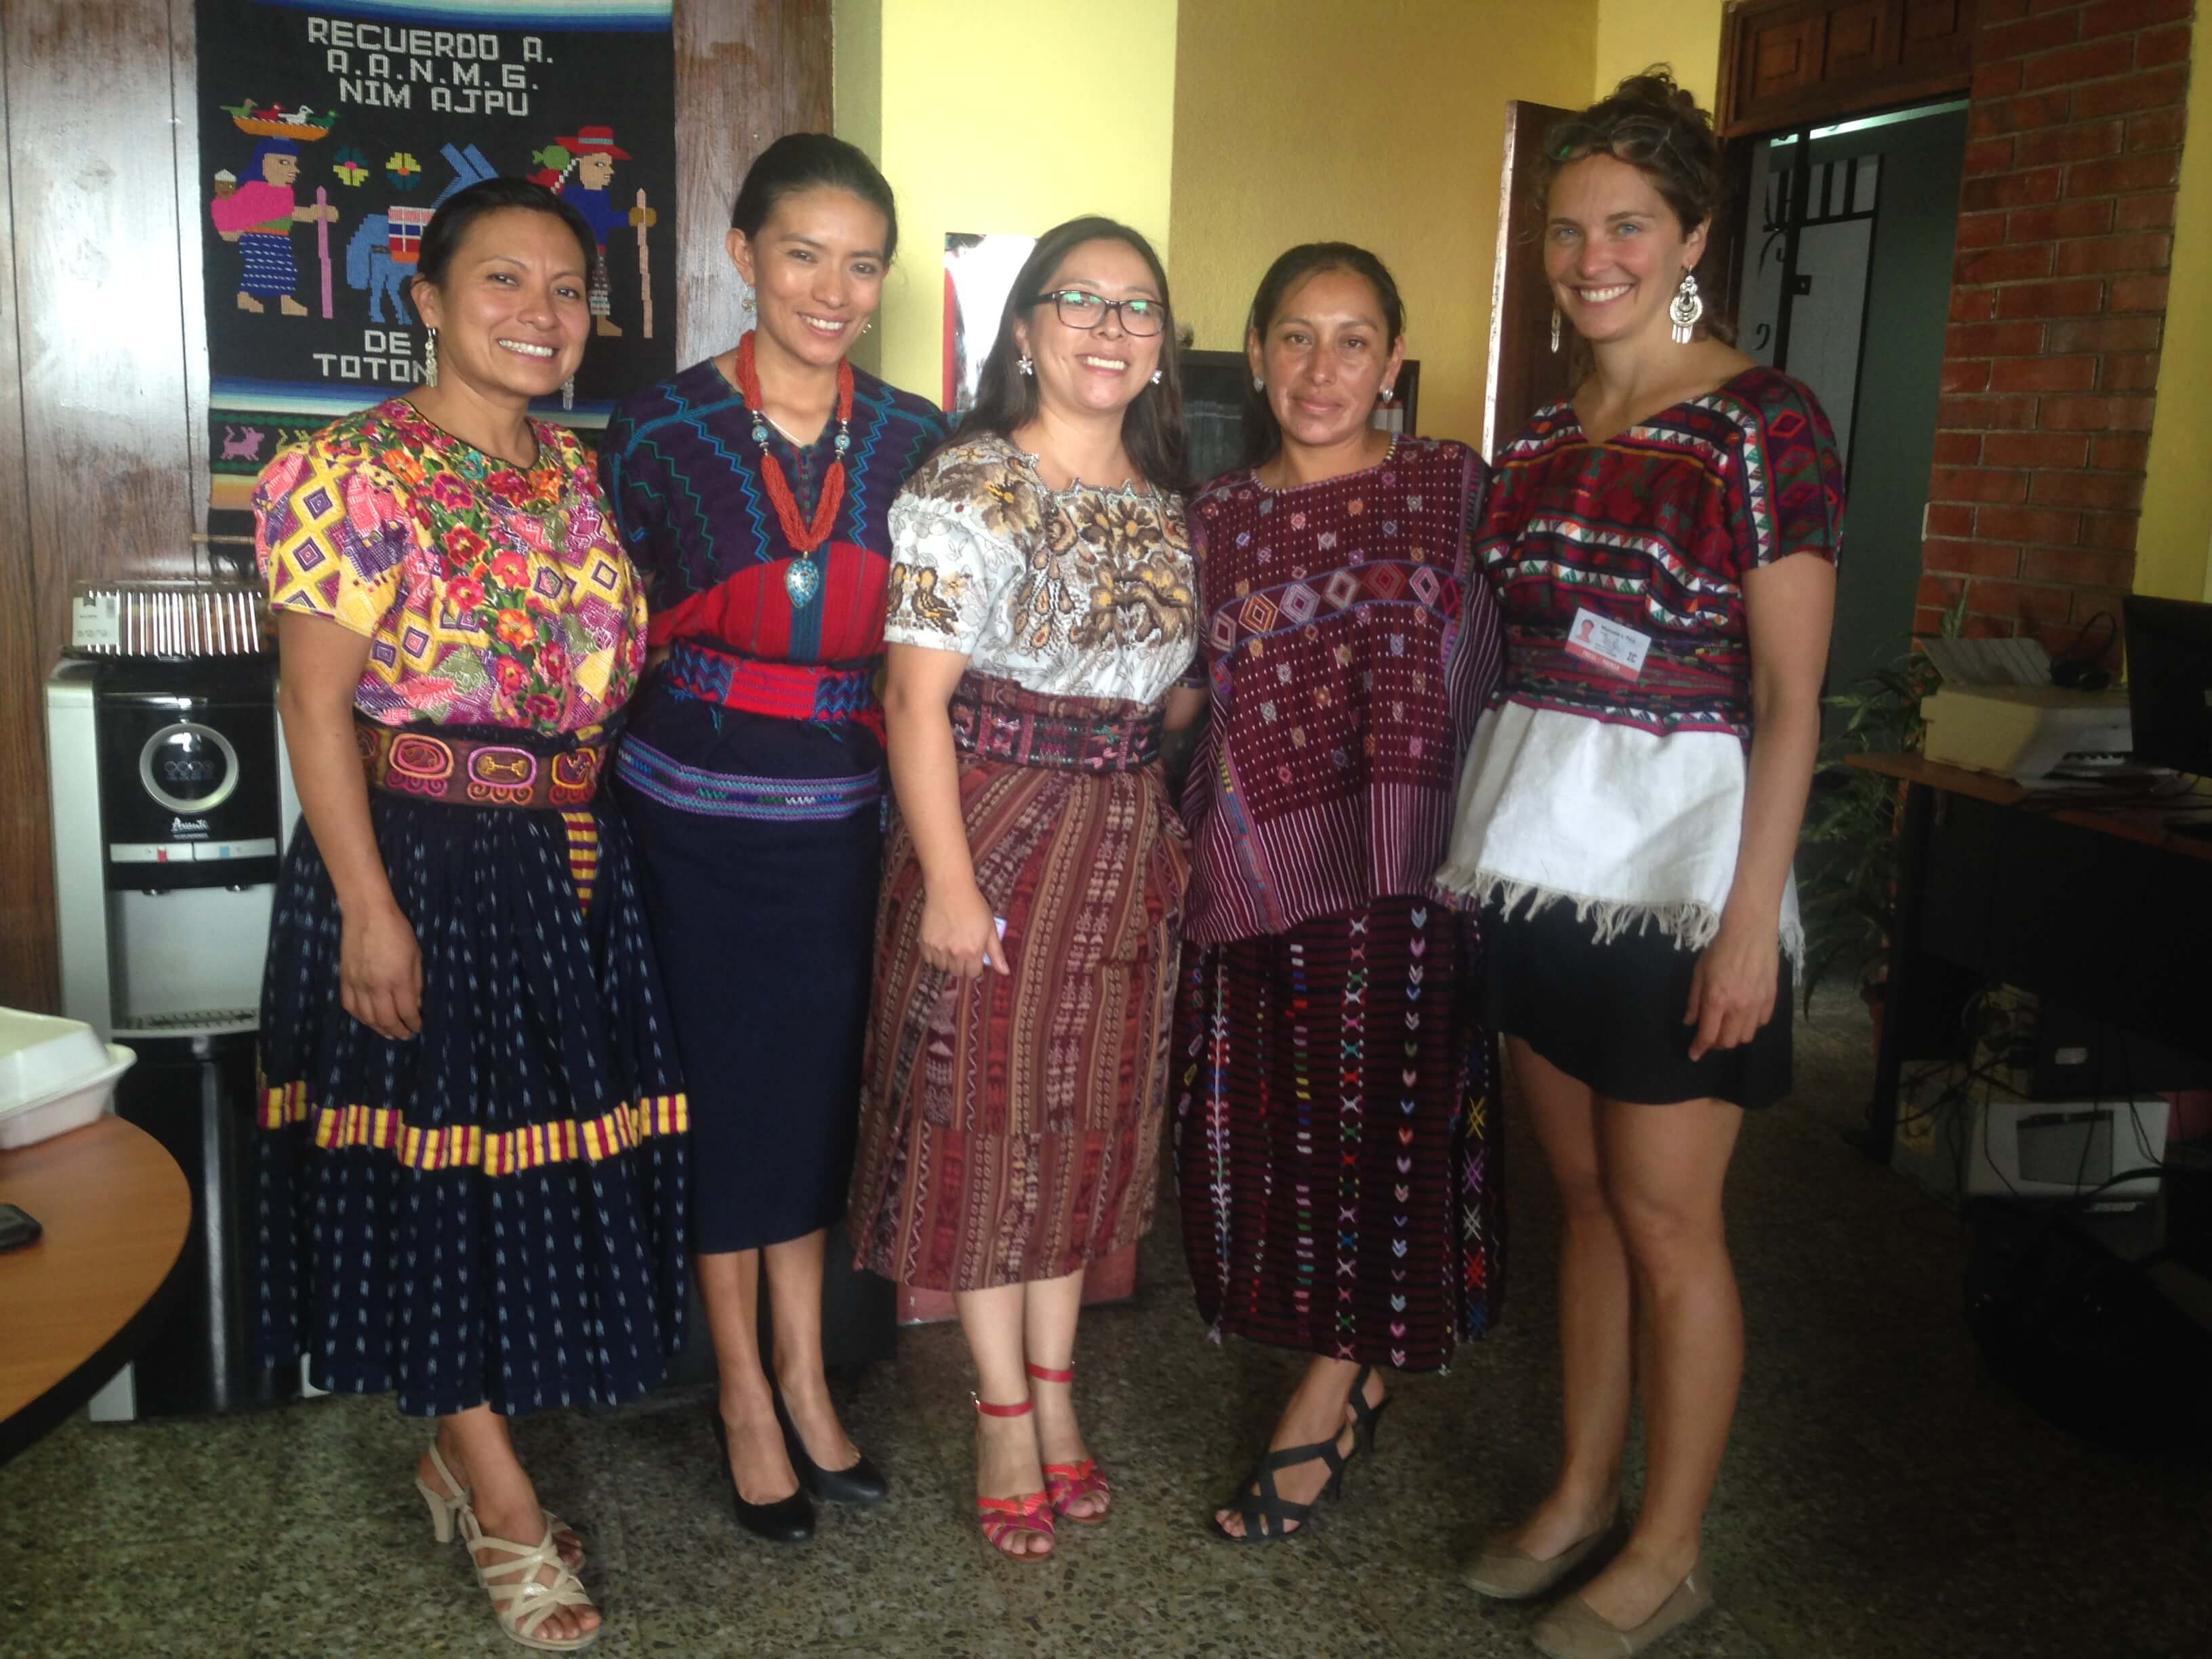 Nim Ajpu lawyers Angelina Aspuac, Ixquik Poz, Mellina Salvador, and  Rosa Ixcol  with Manuela Picq (right). Photo: José Agry Sian